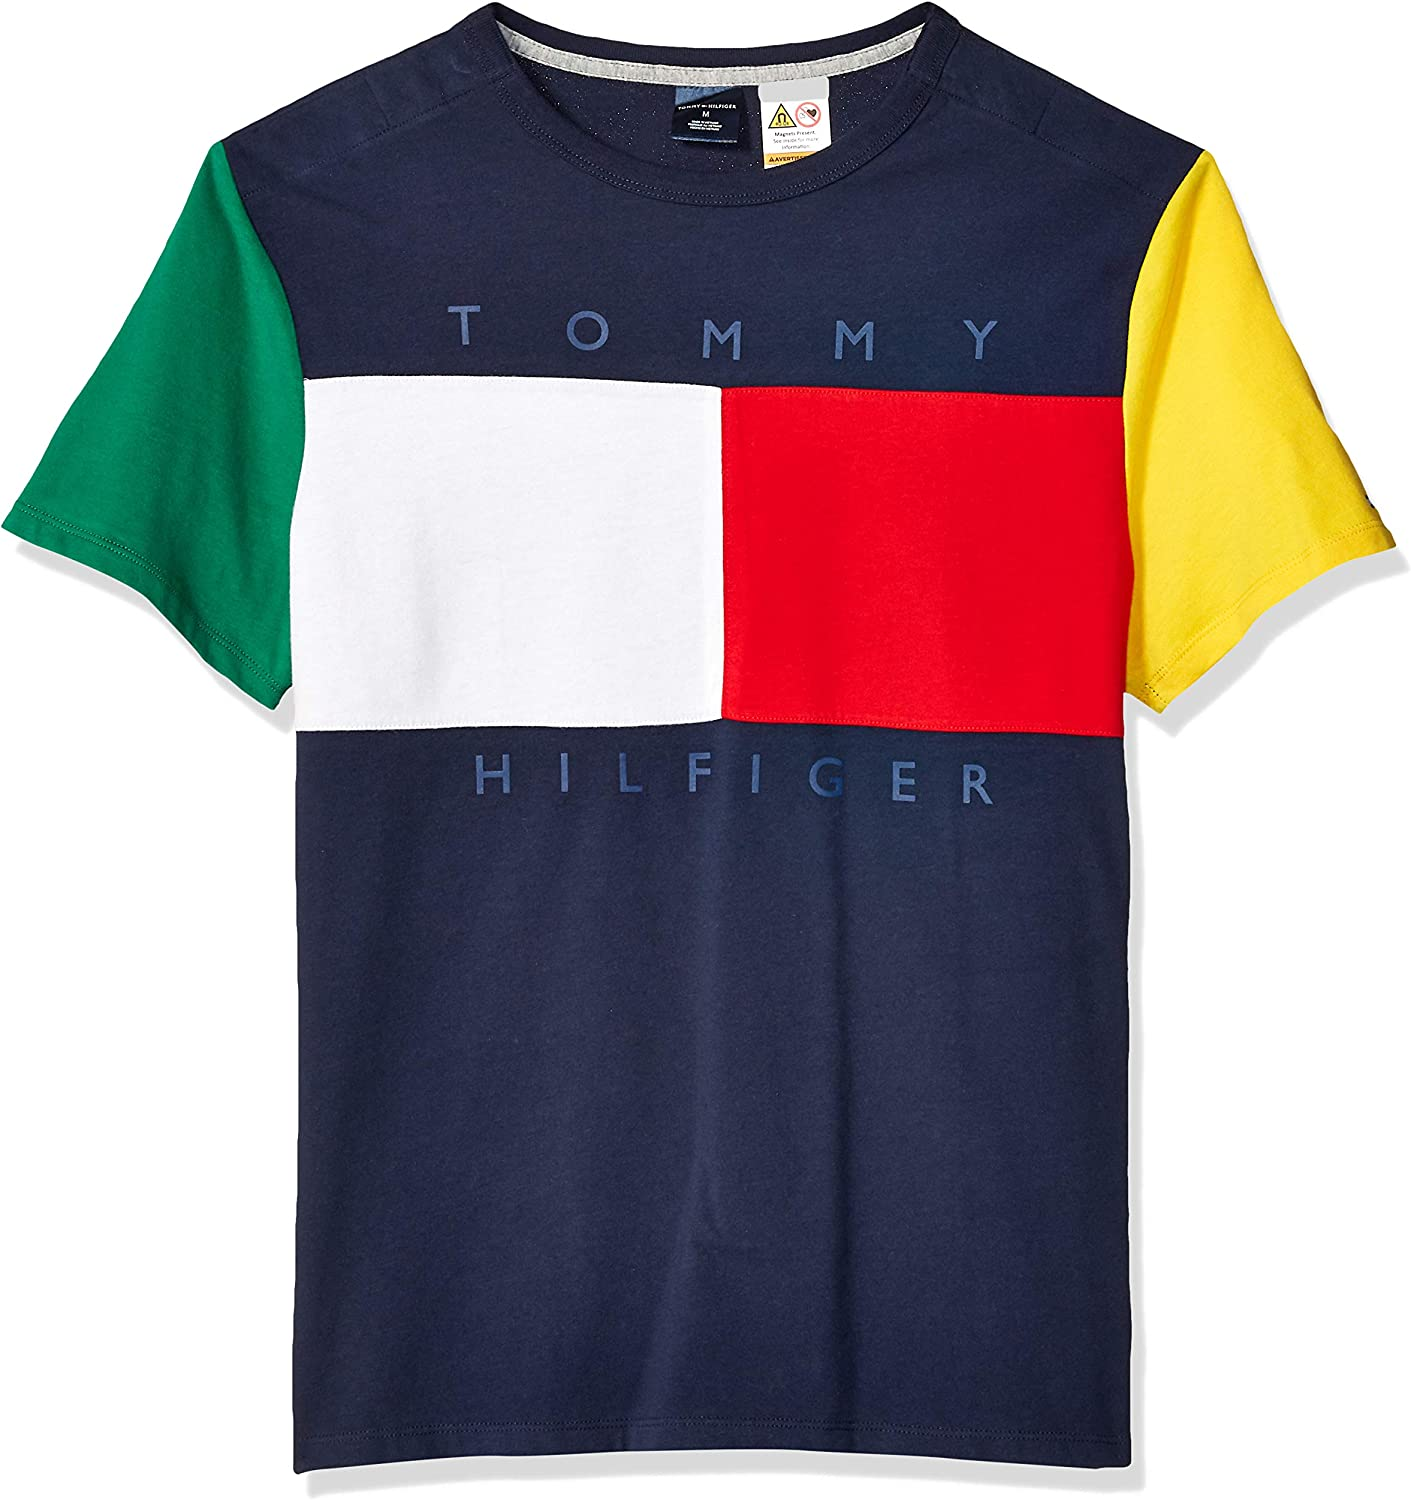 Tommy Hilfiger Mens Adaptive T Shirt with Magnetic Buttons at Shoulders